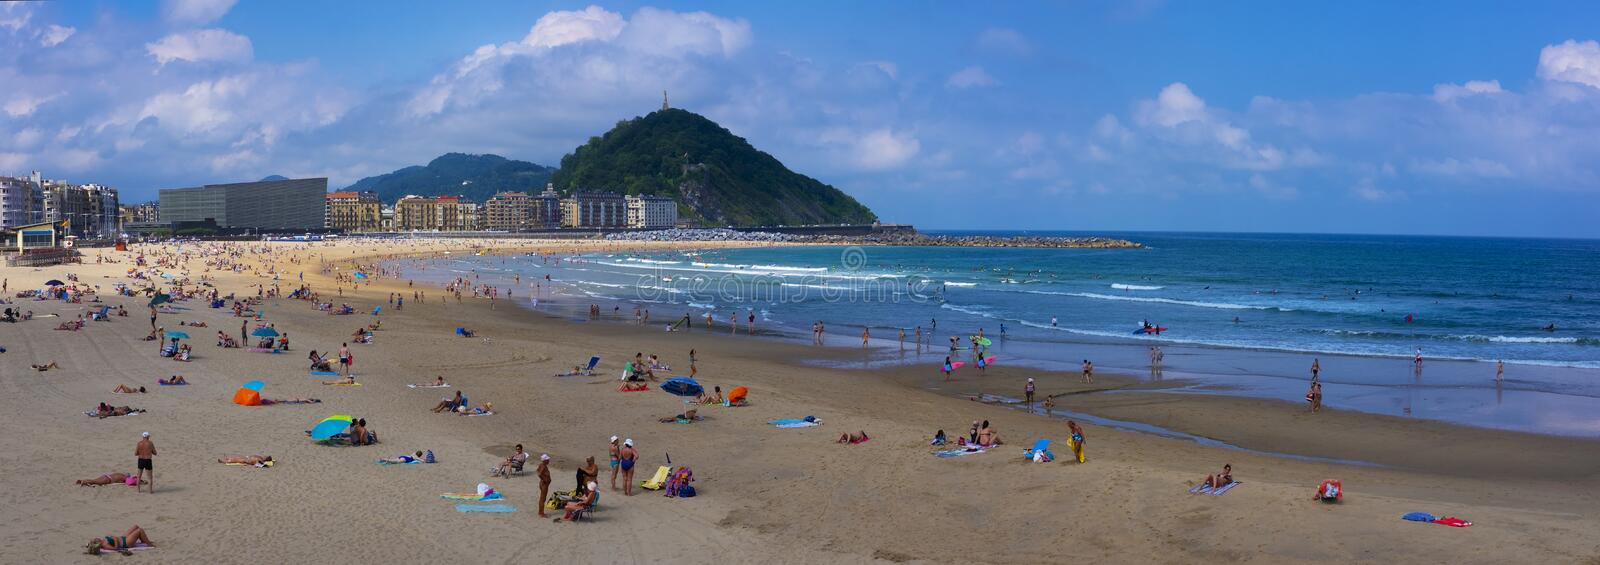 People enjoying the sun on Zurriola beach, City of San Sebastian, Basque Country stock image